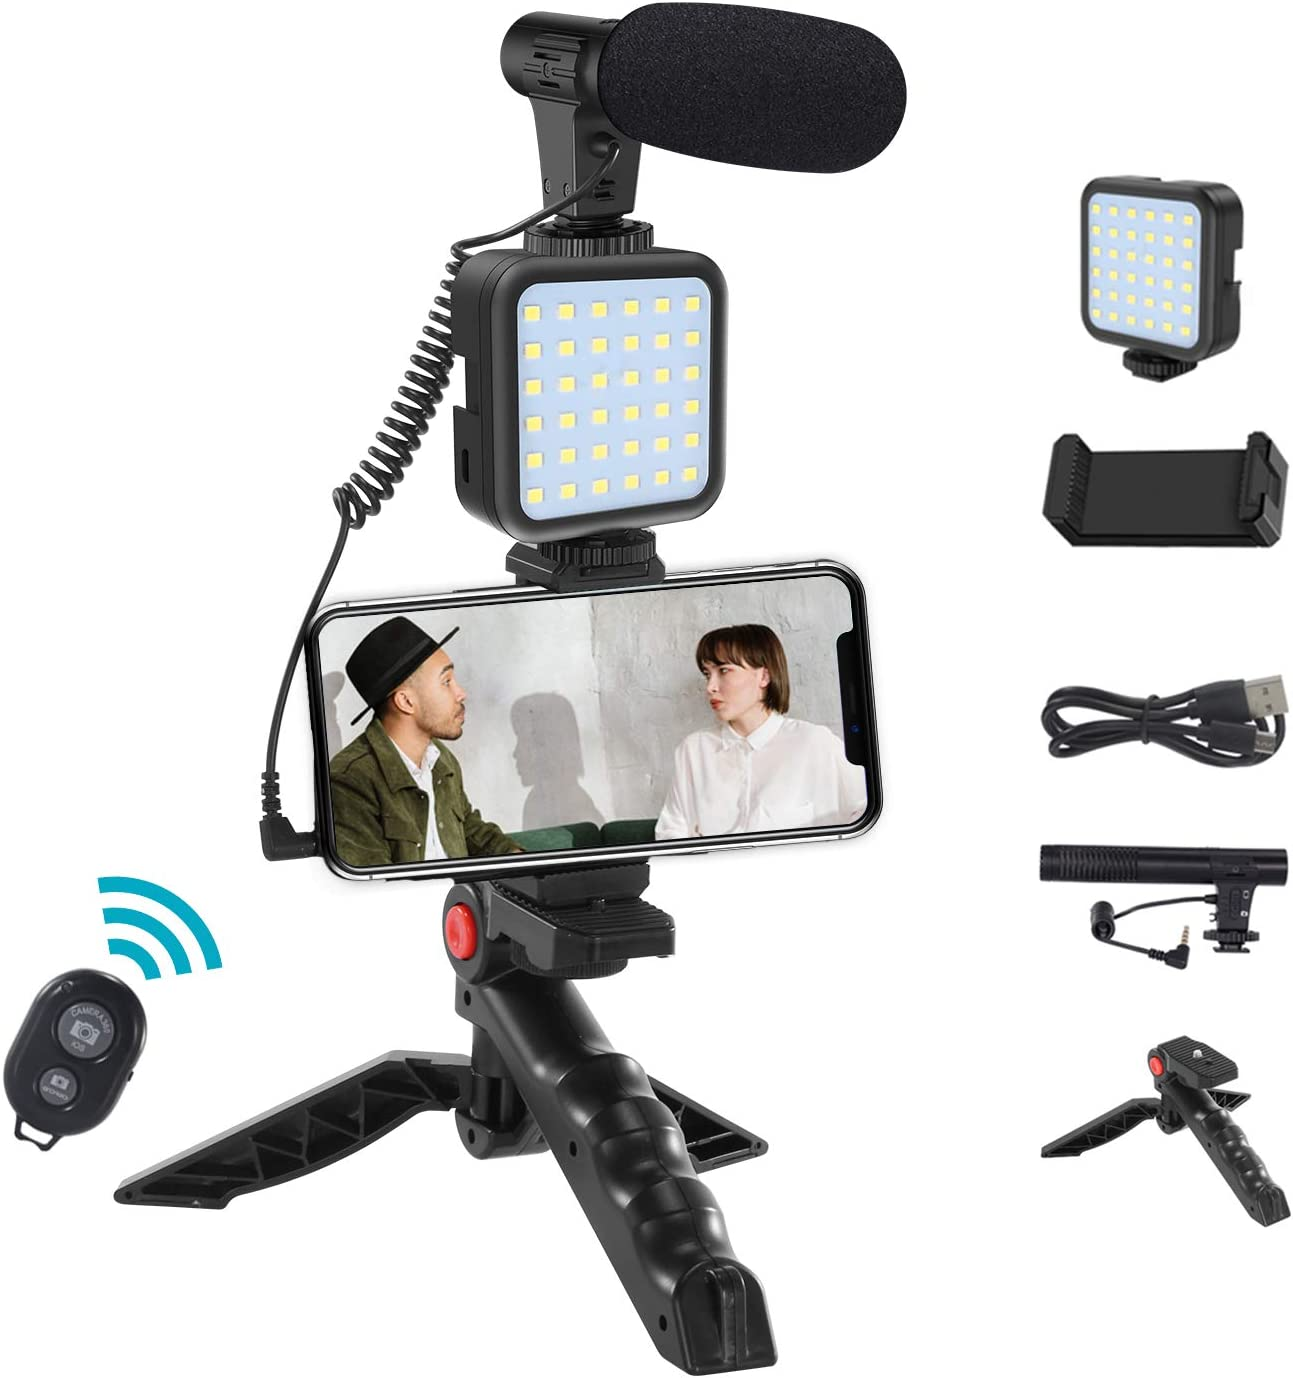 Smartphone Video Microphone Rig Kit with LED Light,Wireless Remo